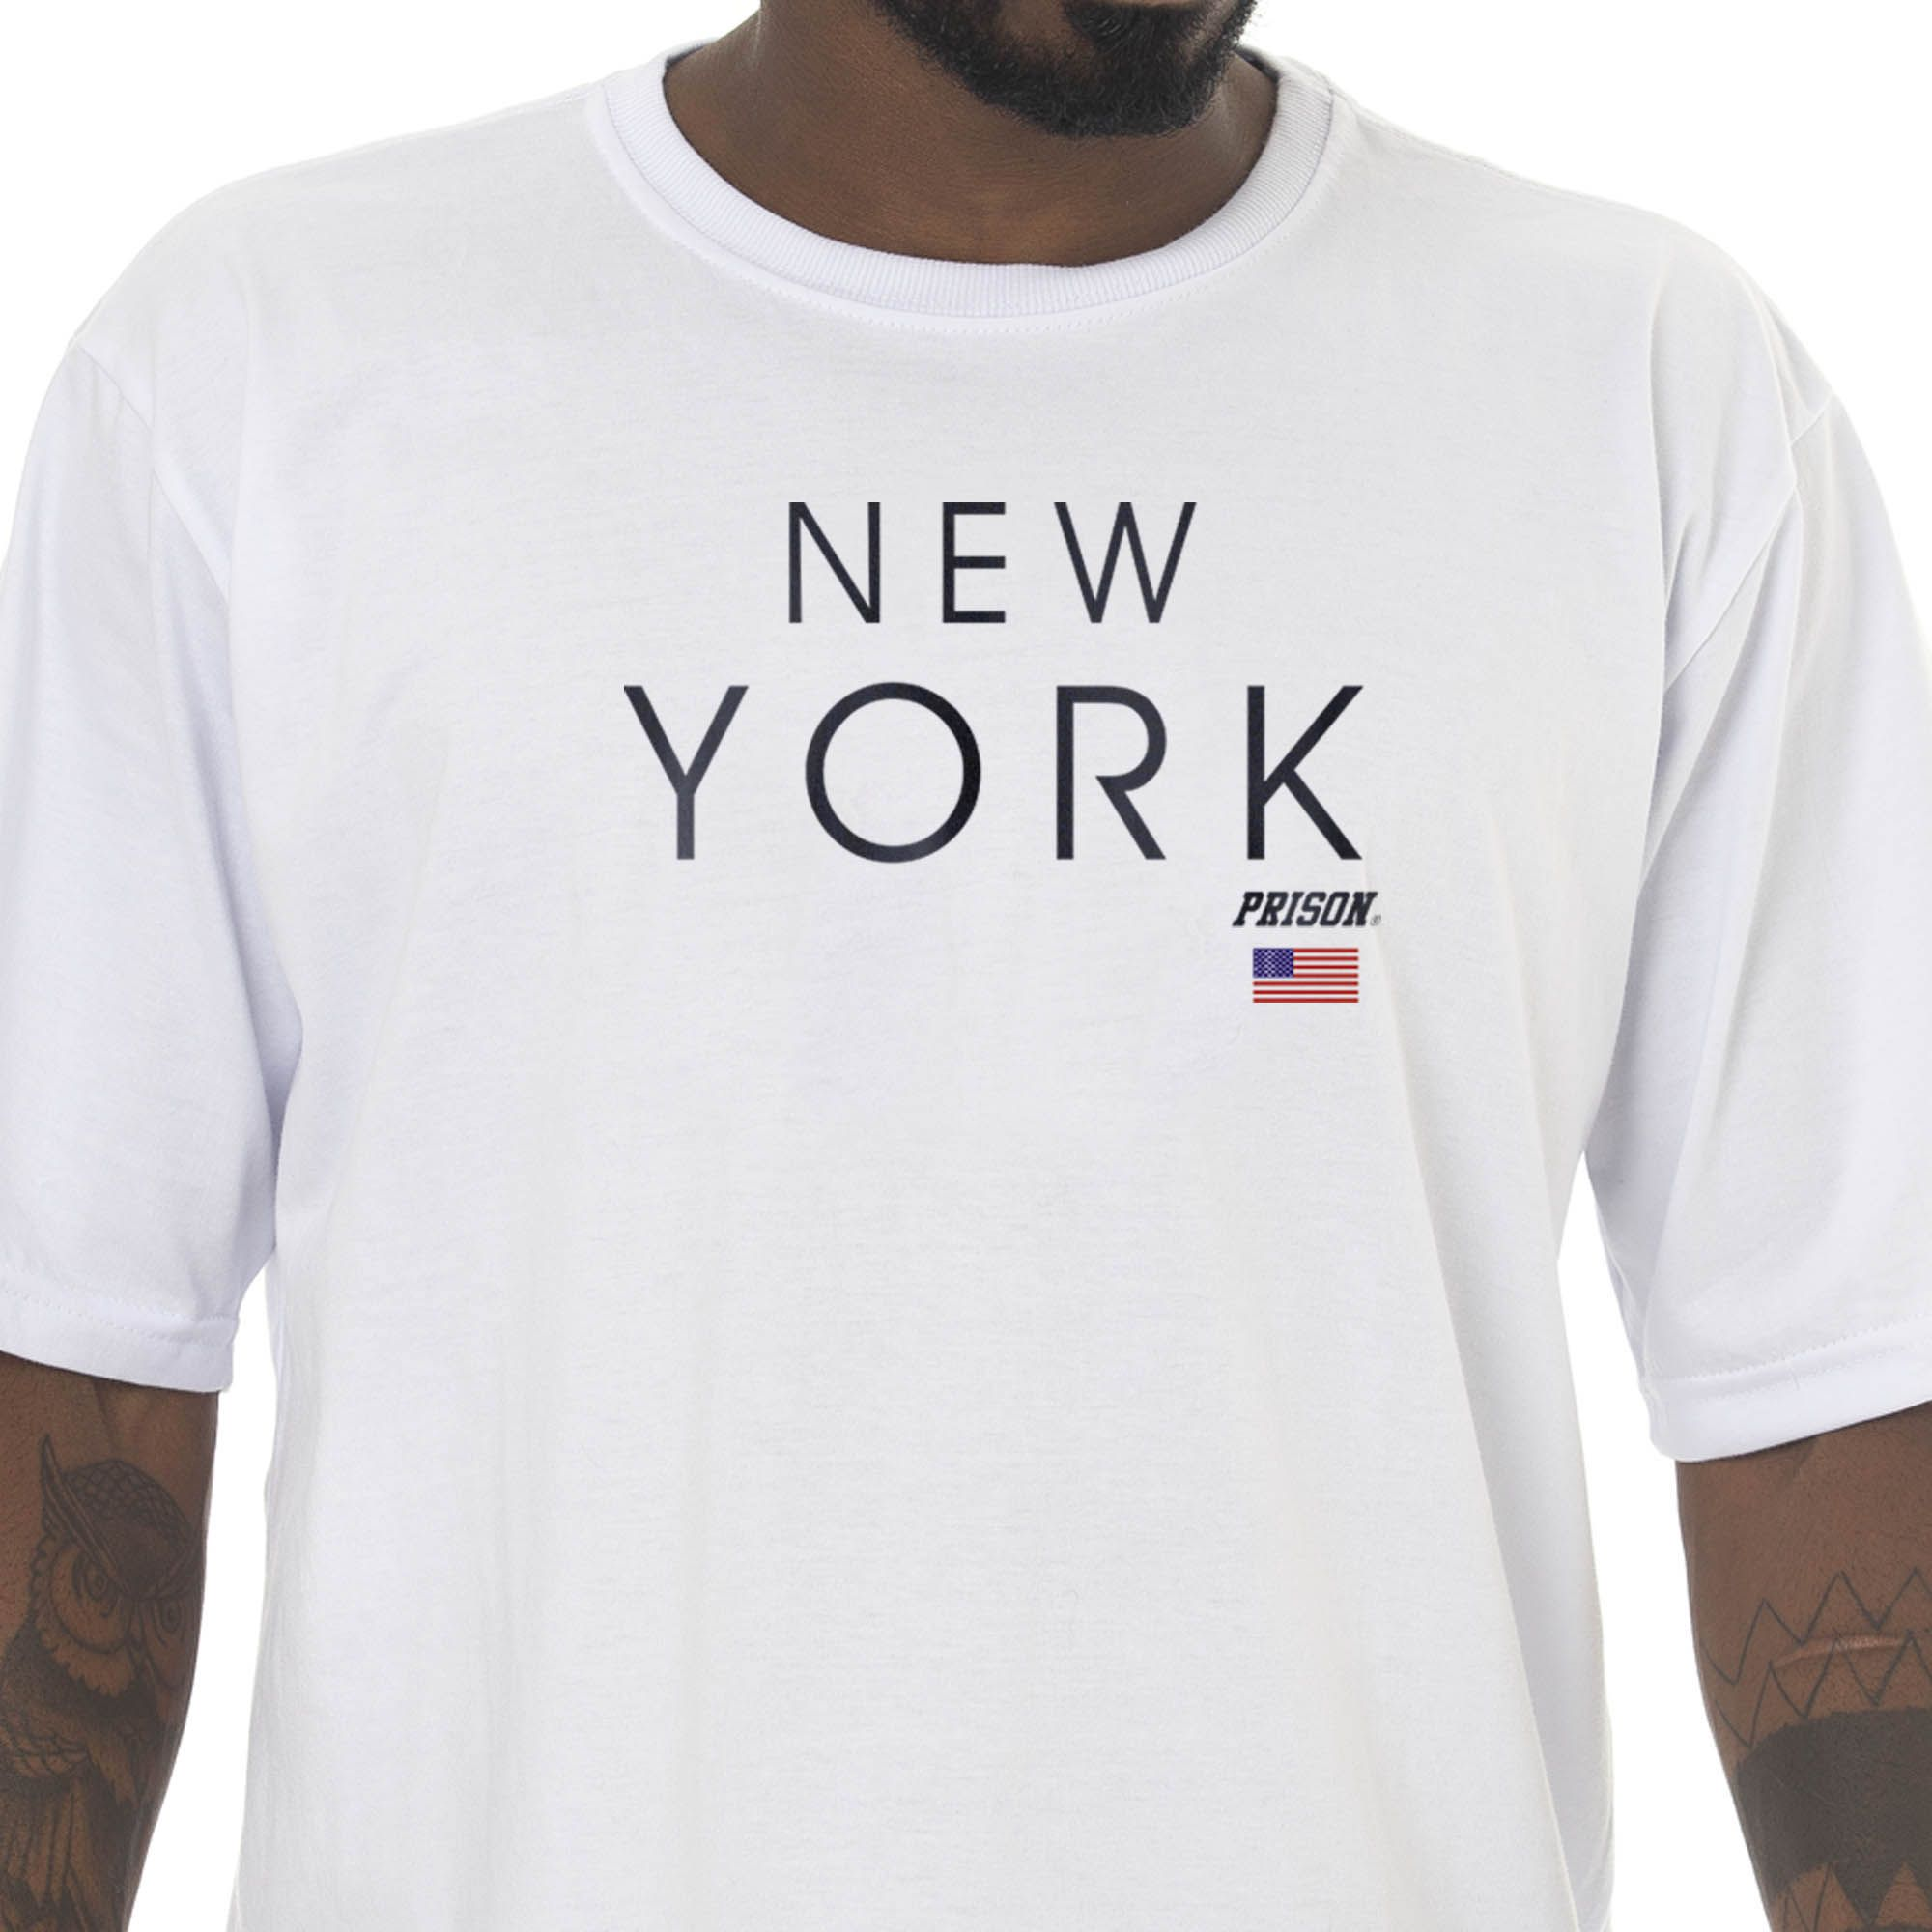 Camiseta Prison New York Branca